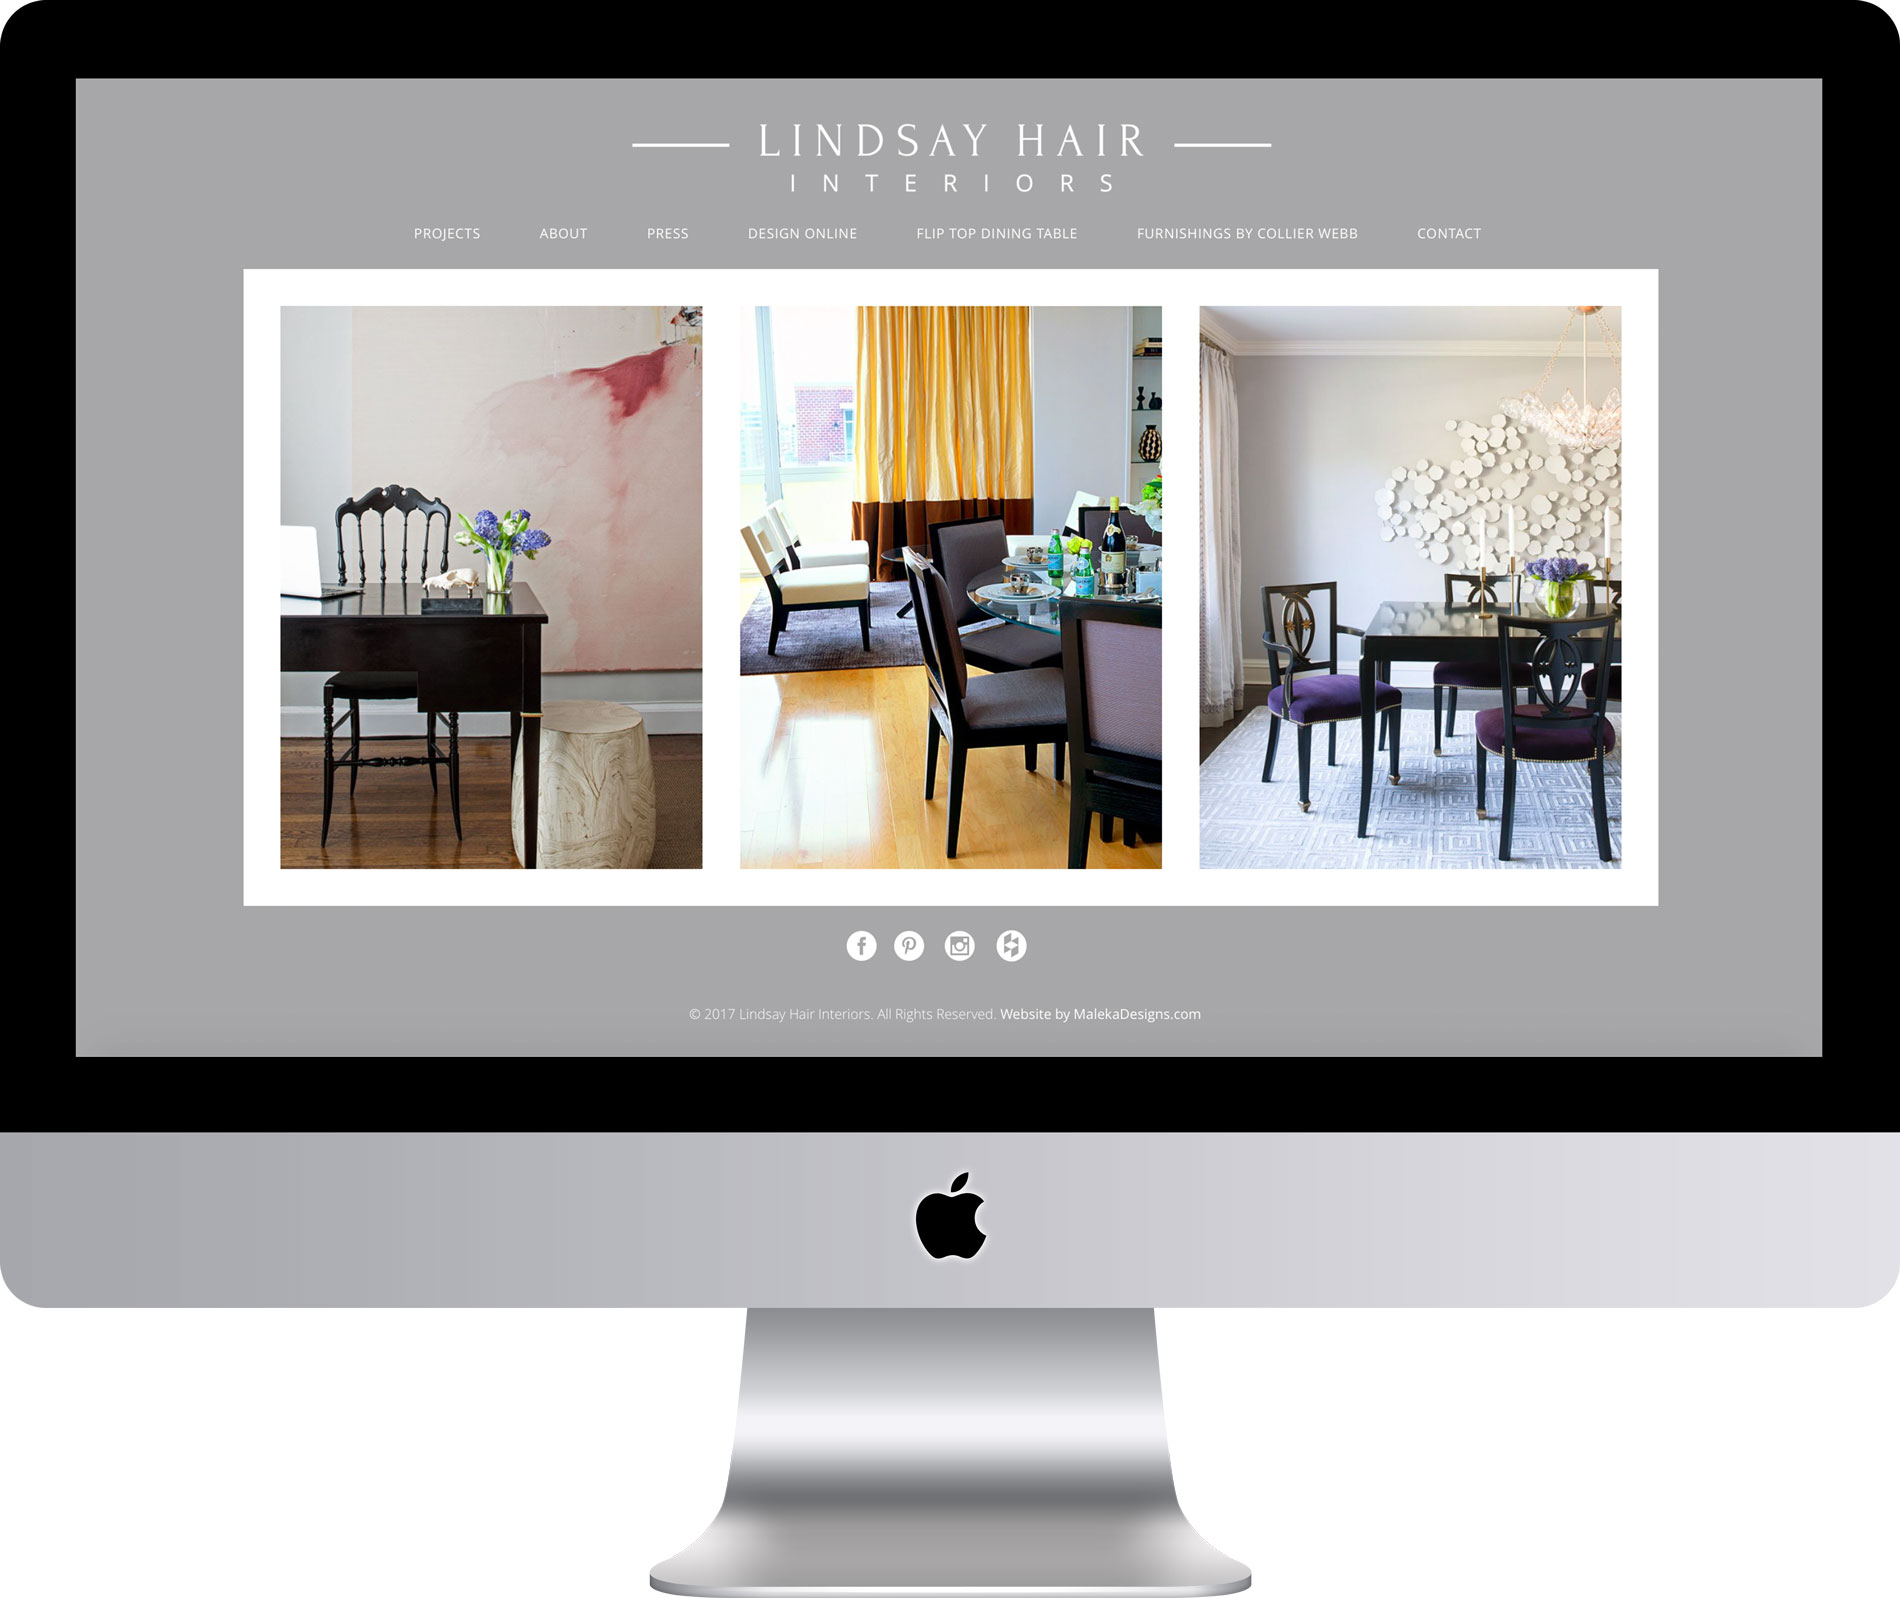 Lindsay Hair Interiors Website by Maleka Designs